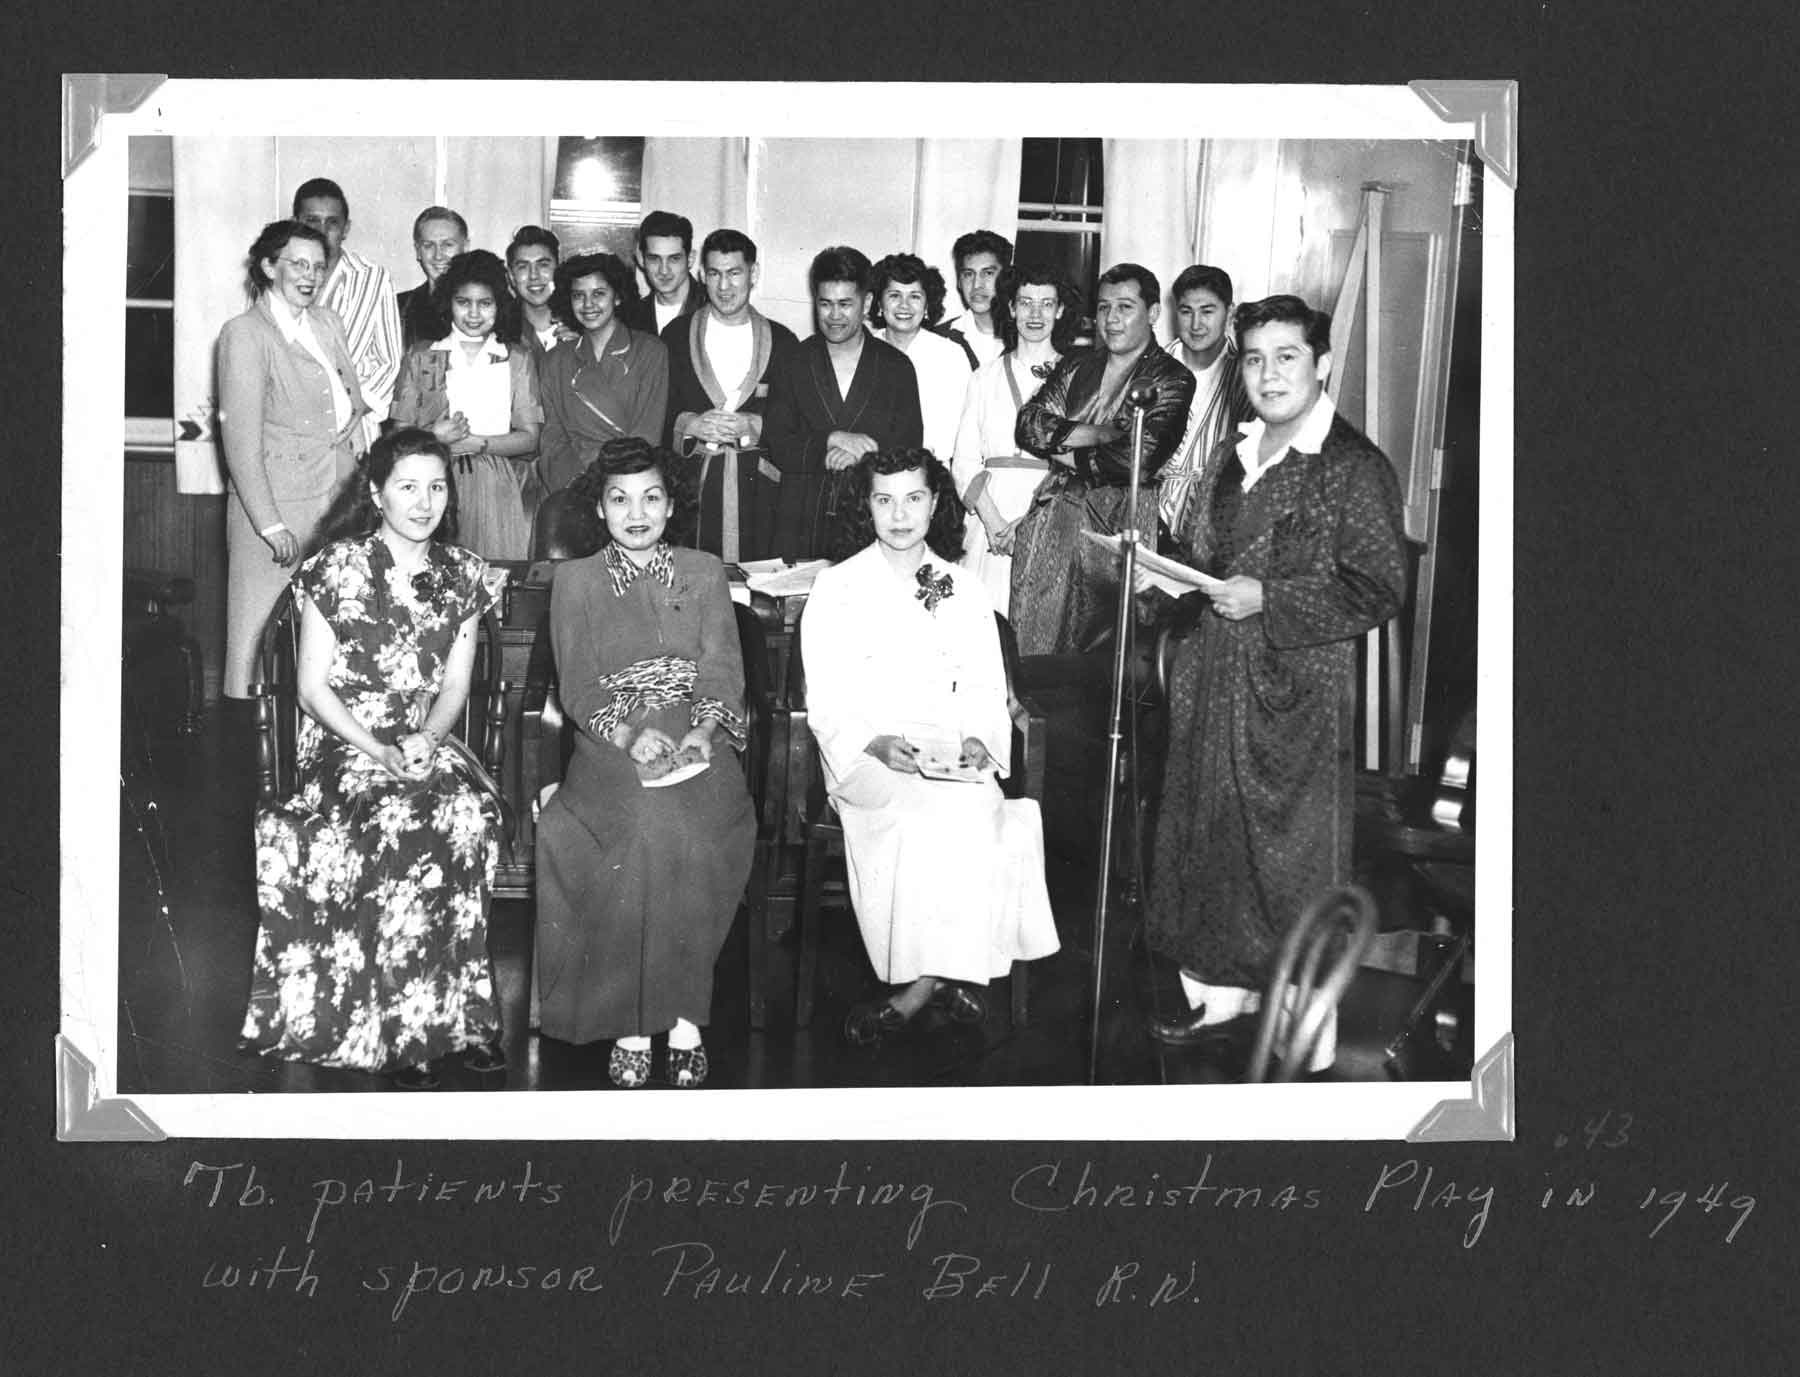 Tb. patients presenting Christmas Play in 1949 with sponsor Pauline Bell R.N.